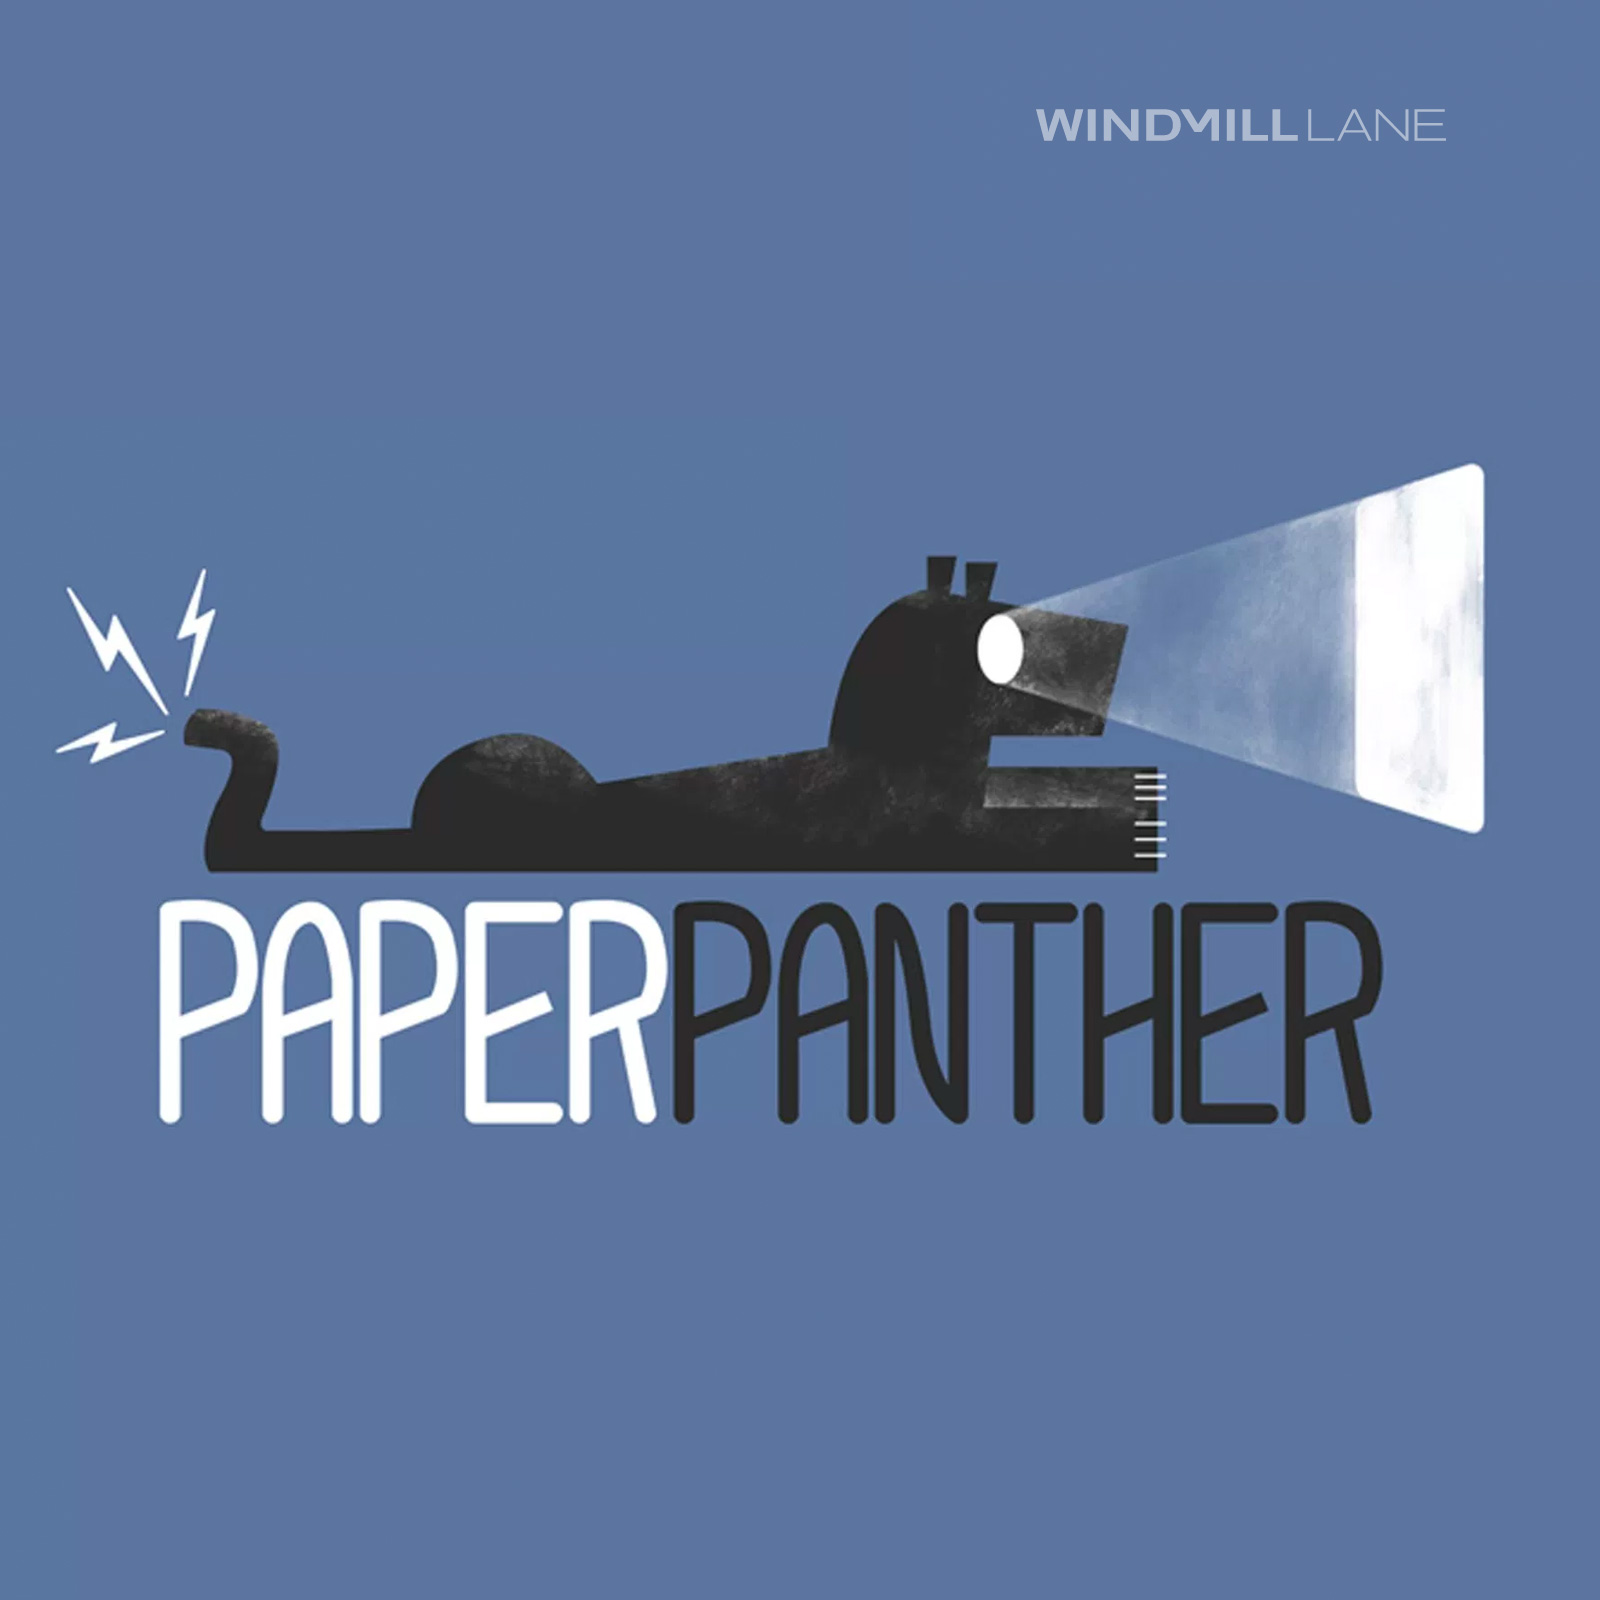 wed_21st_2pm6pm_br_stop_motion_workshop_paper_panther_windmill_lane